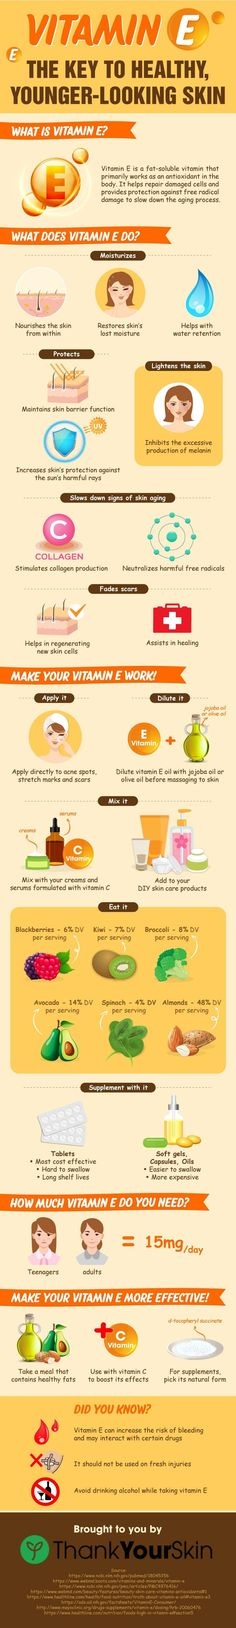 Benefits of Vitamin E Oil, Capsules, Cream for Skin, - For Scar and anti aging, Foods with Vitamin E. #VitaminE #VitaminEforSkin #ThankYourSkin